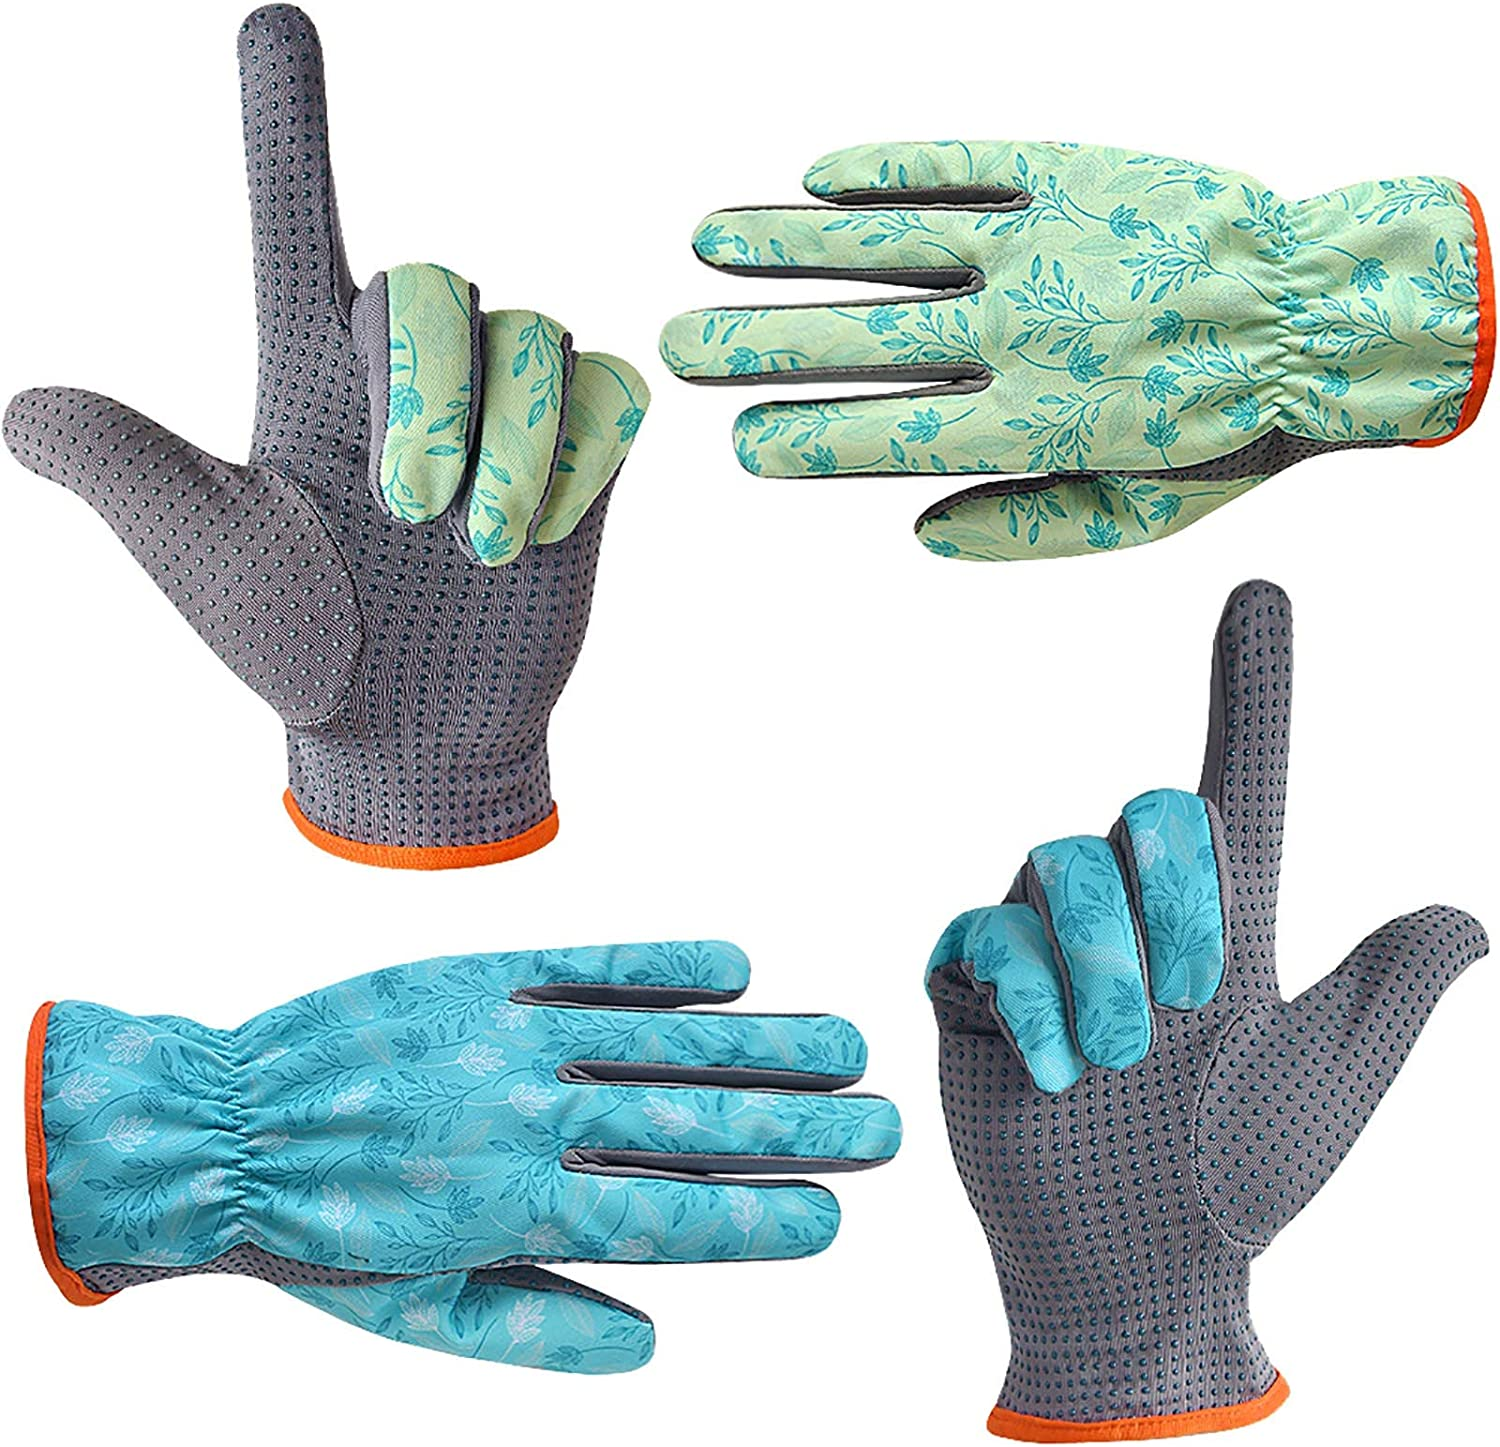 SEUROINT Gardening Gloves for Men and Women, Garden Work Gloves with PVC Dots, 2 Pairs Lightweight Breathable Polyester Gloves, Dark blue & White, Large Size